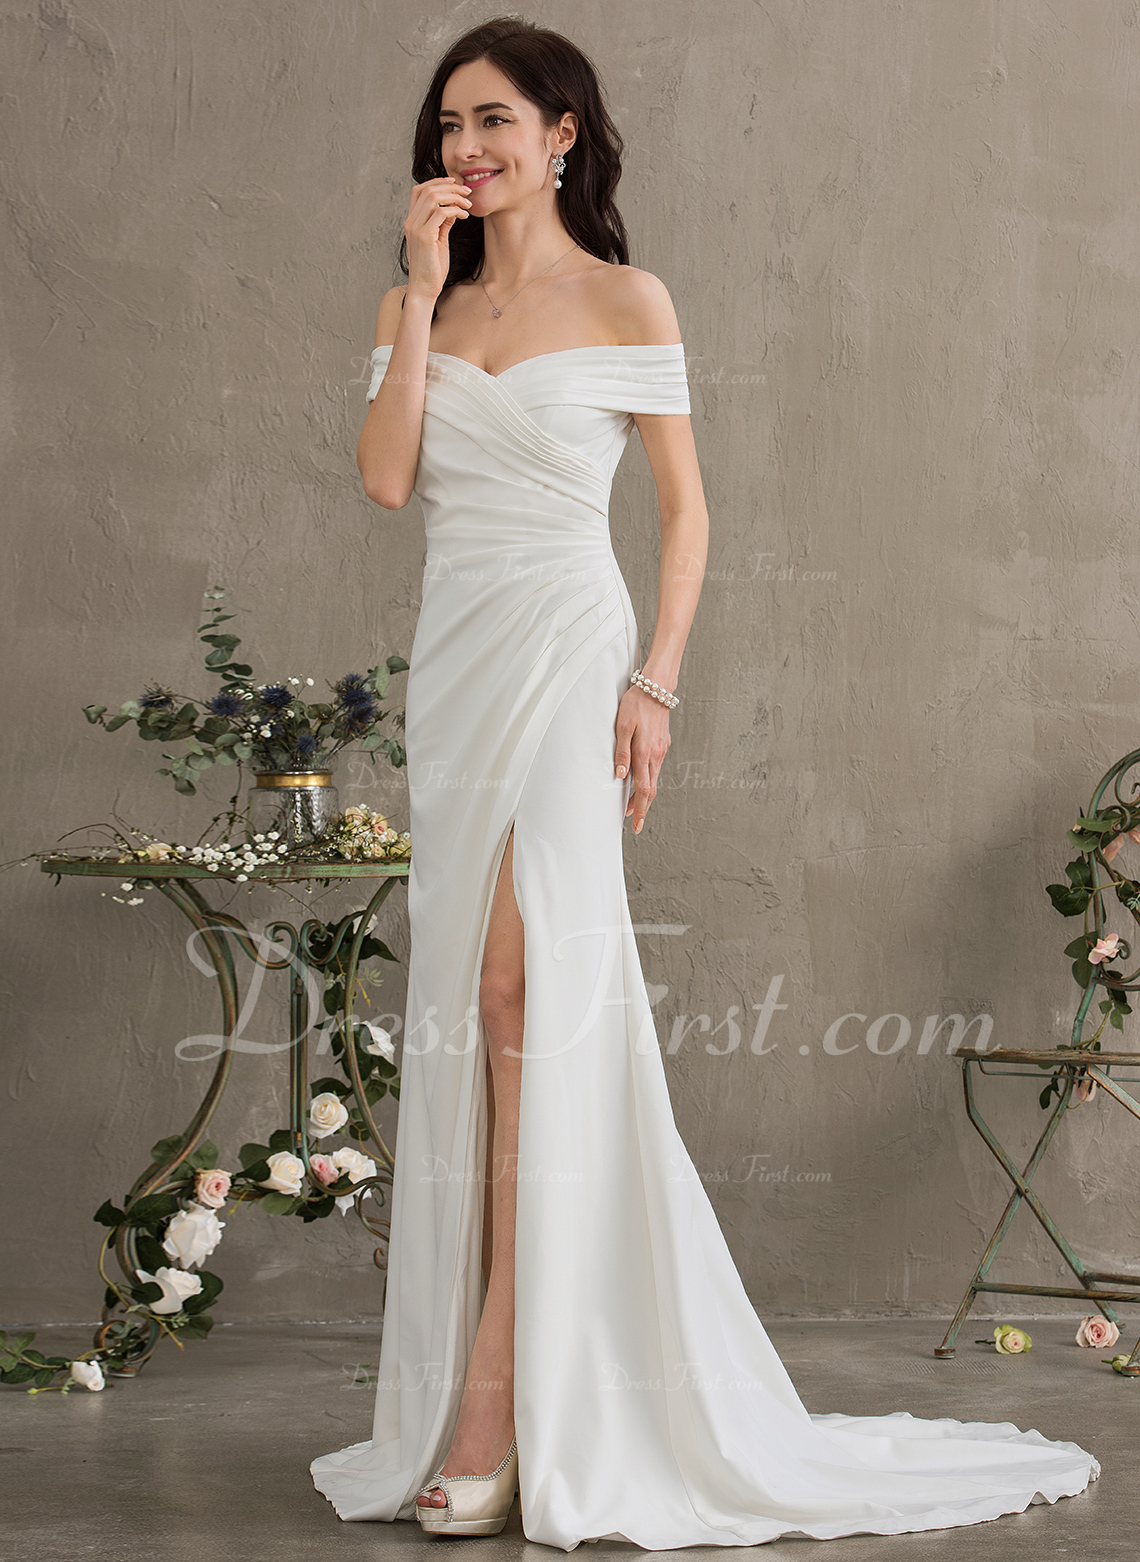 buy popular 16d62 d6d0e [€ 149.42] Tubino Spalle scoperte Sweep/Spazzola treno Crespo Elastico  Abiti da sposa con Increspature Spacco sul davanti - JJsHouse